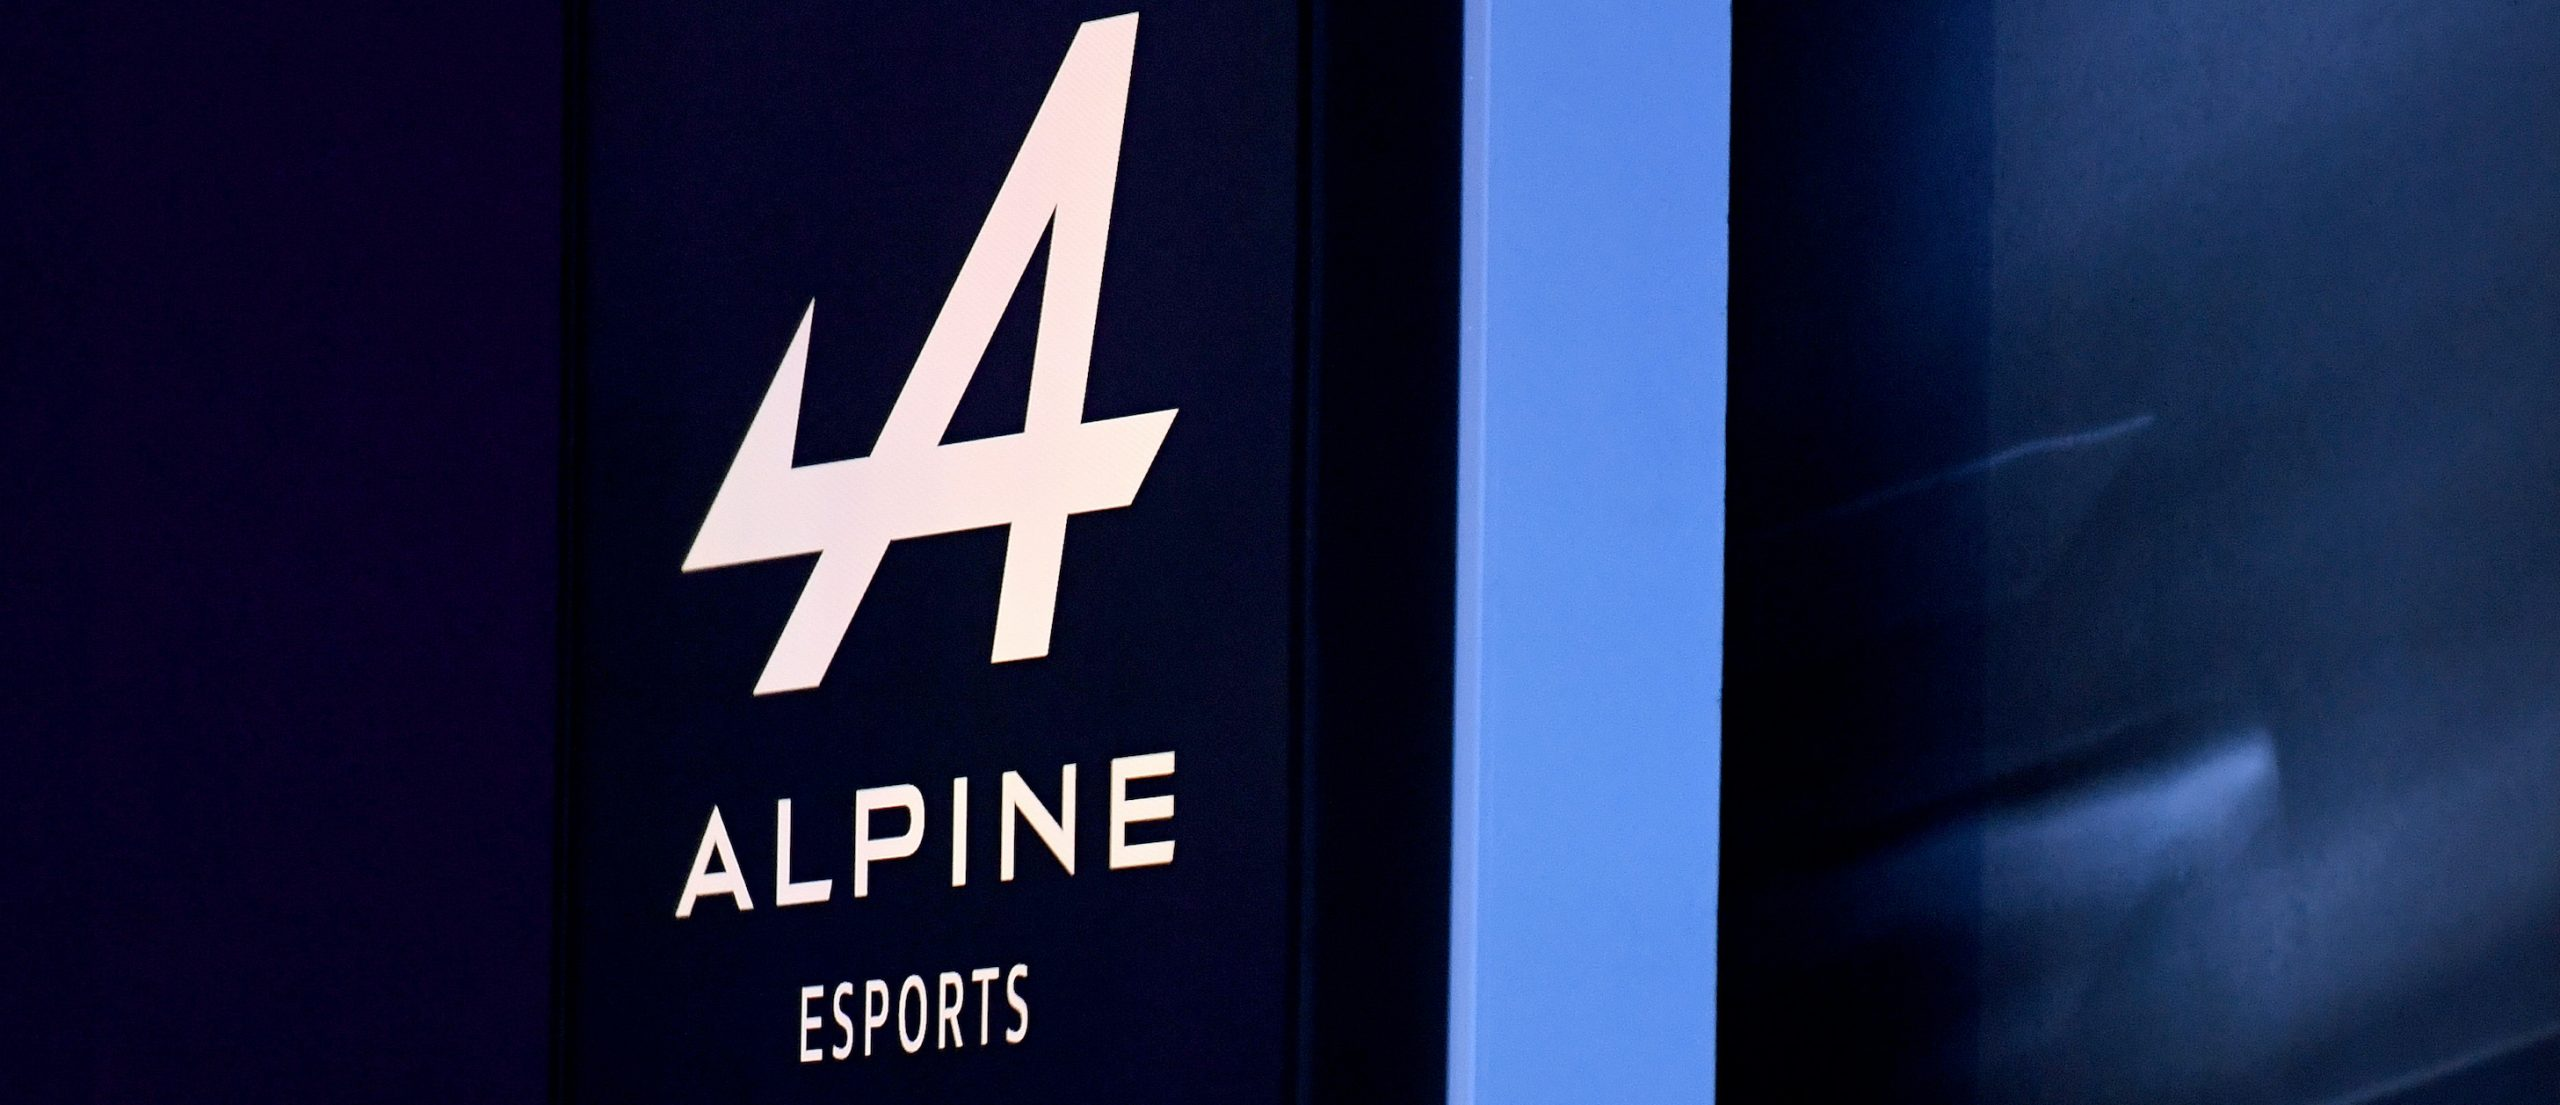 Alpine Esports Launches 'The Conquest' Webseries for 2021